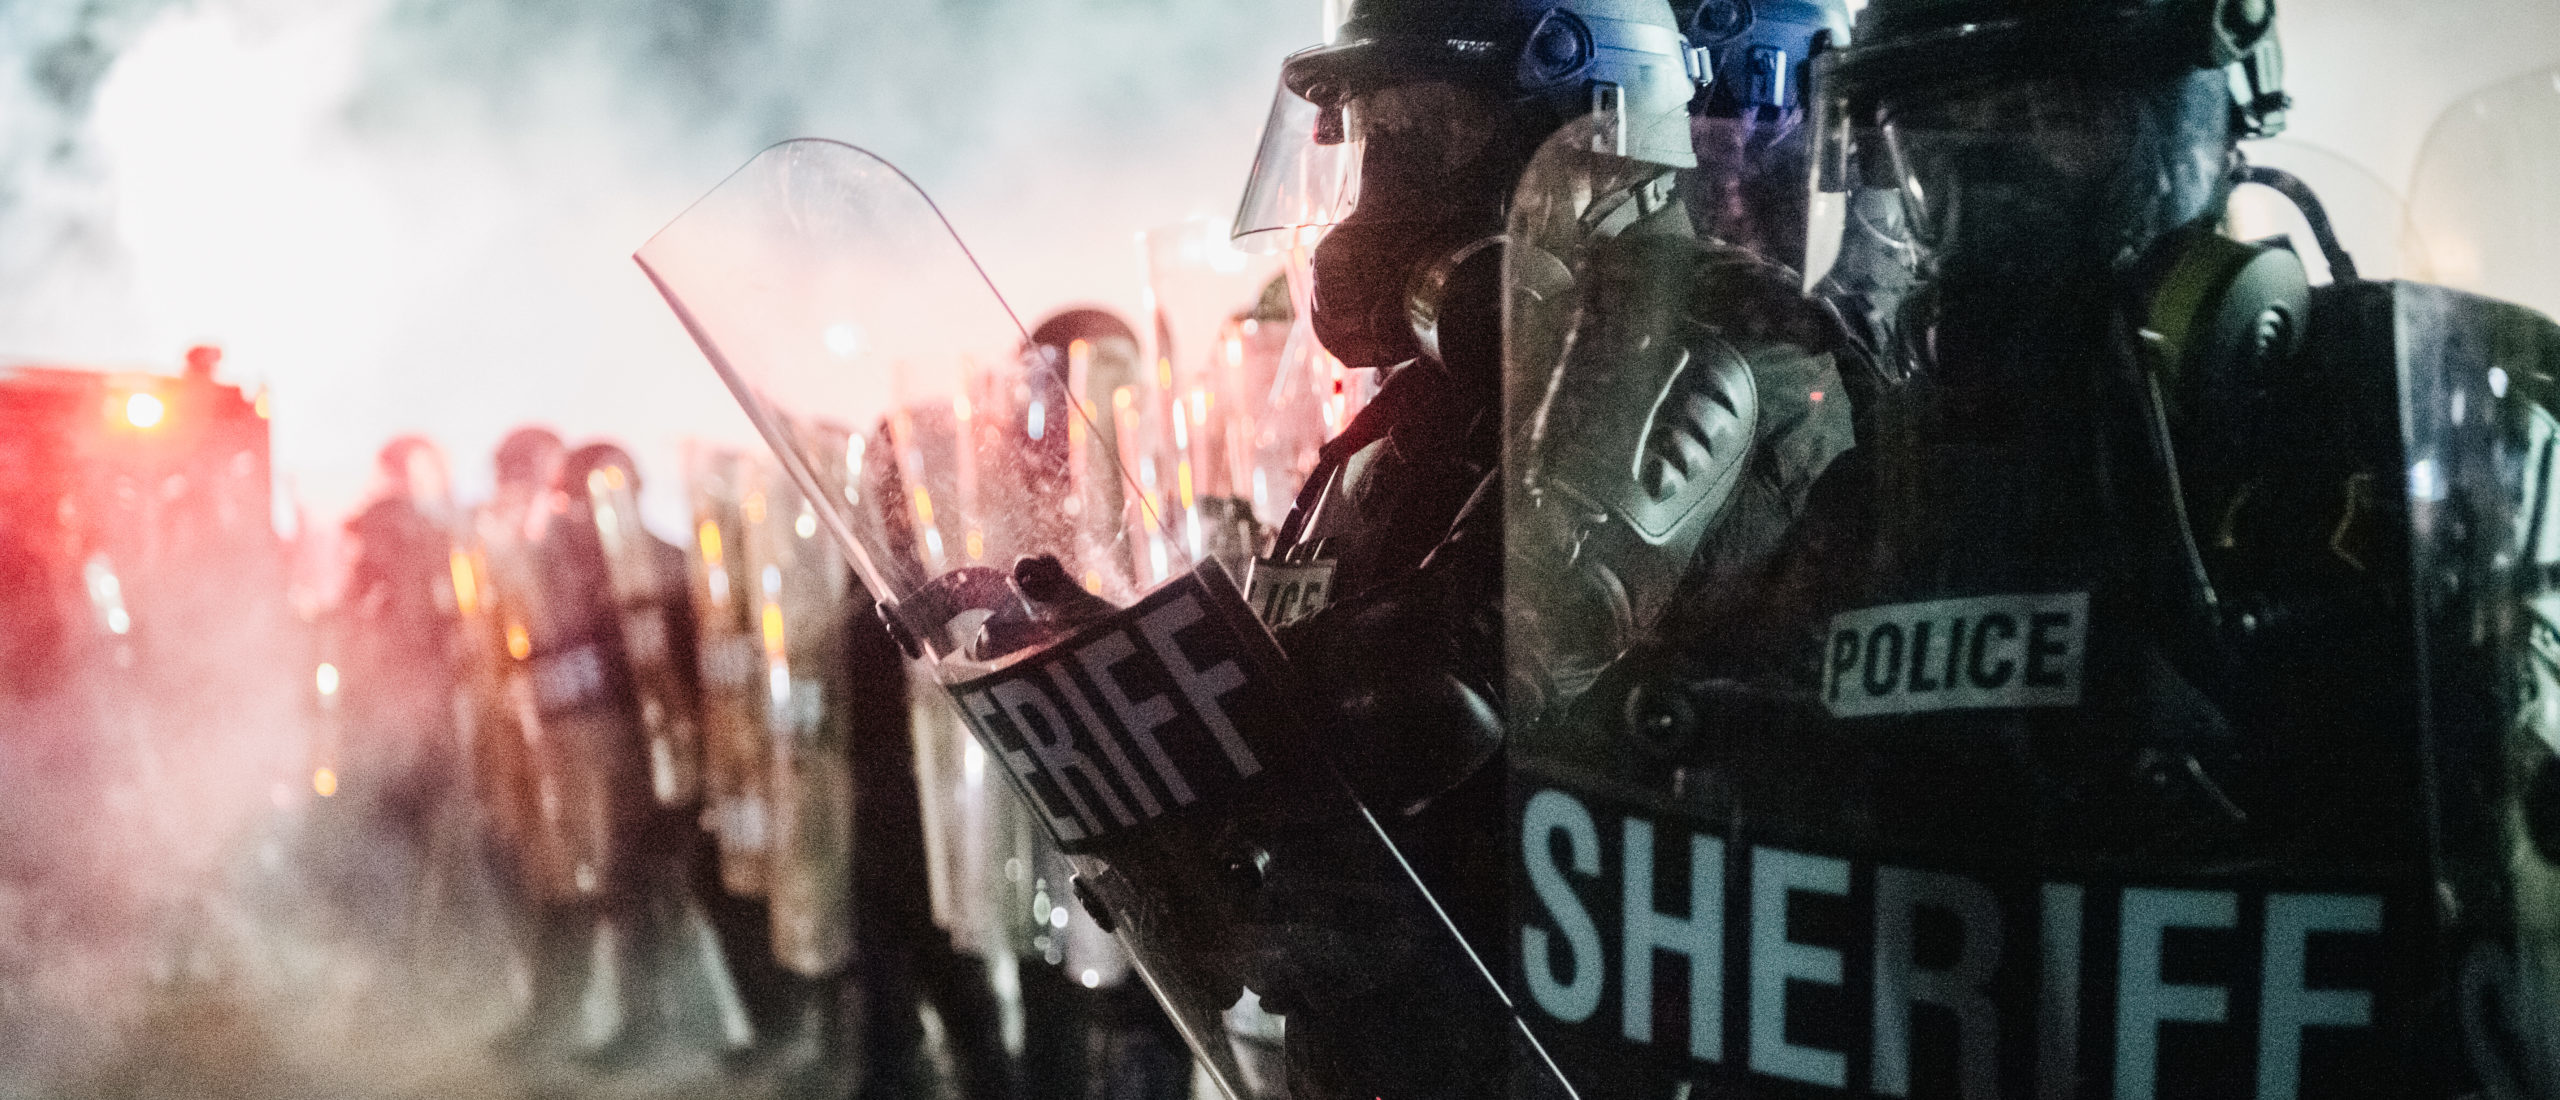 KENOSHA, WI - AUGUST 25: Law enforcement hold a line on August 25, 2020 in Kenosha, Wisconsin. As the city declared a state of emergency curfew, a third night of civil unrest occurred after the shooting of Jacob Blake, 29, on August 23. (Photo by Brandon Bell/Getty Images)